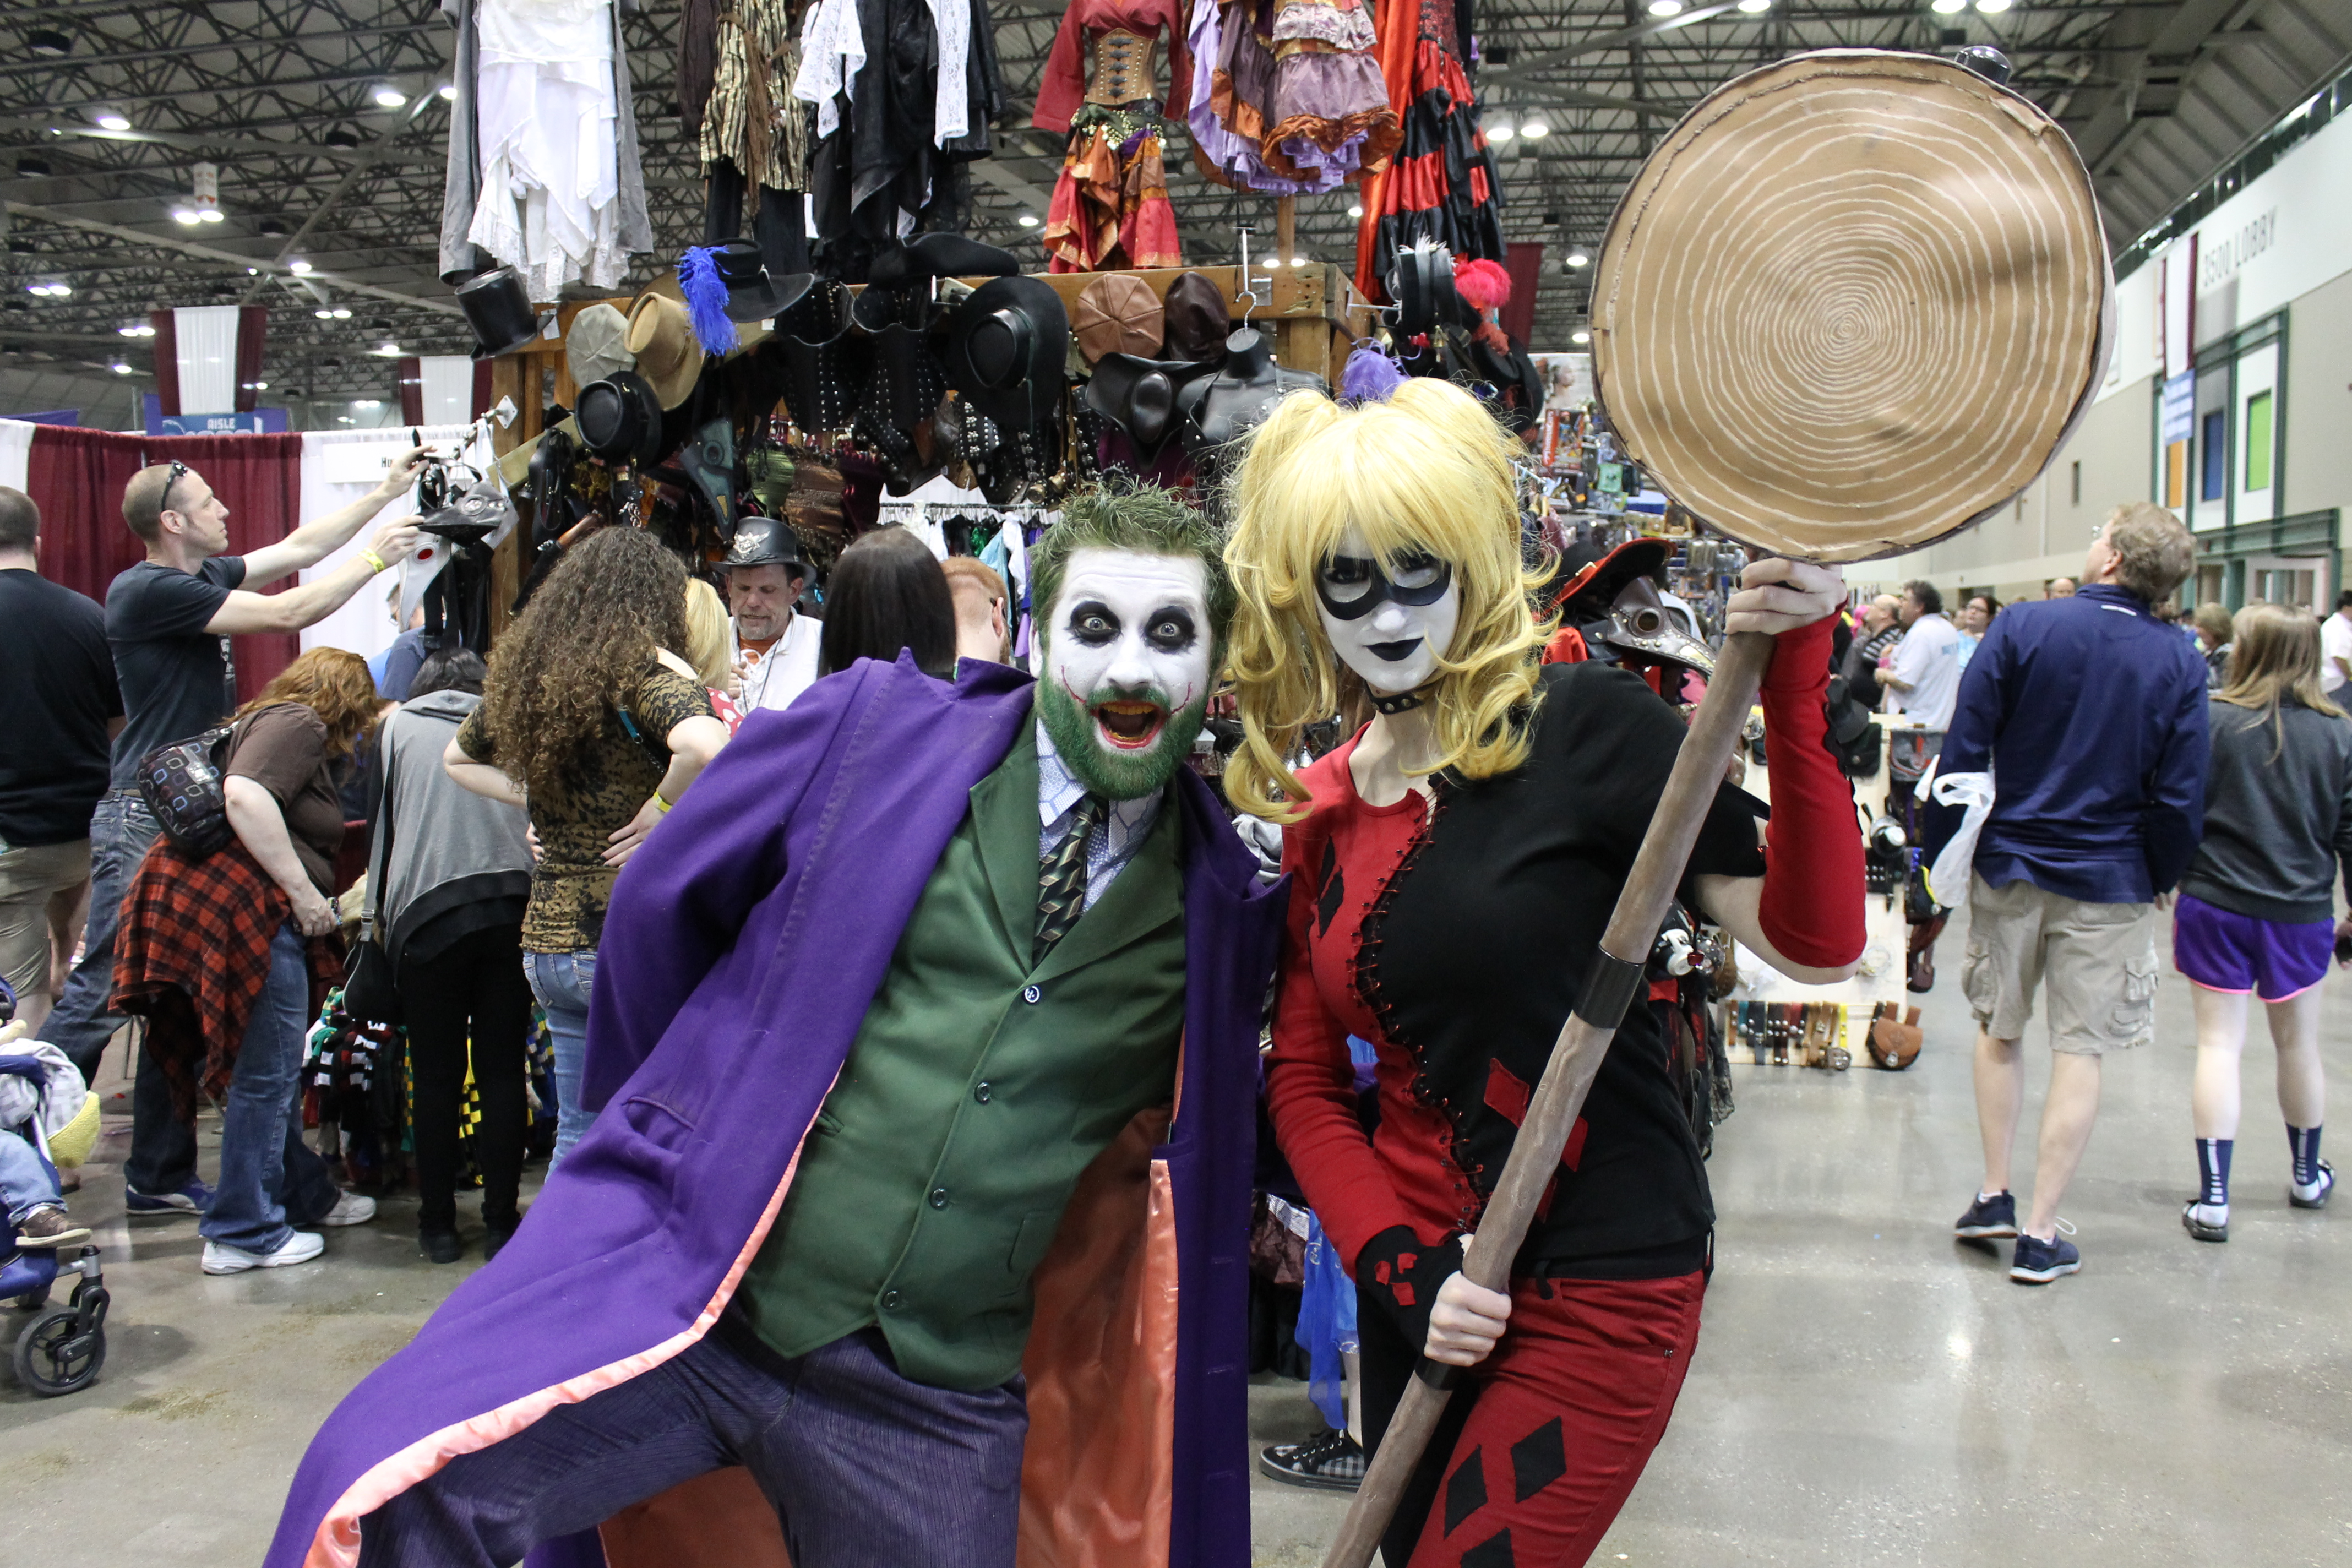 The sights and sounds of Planet Comicon 2015